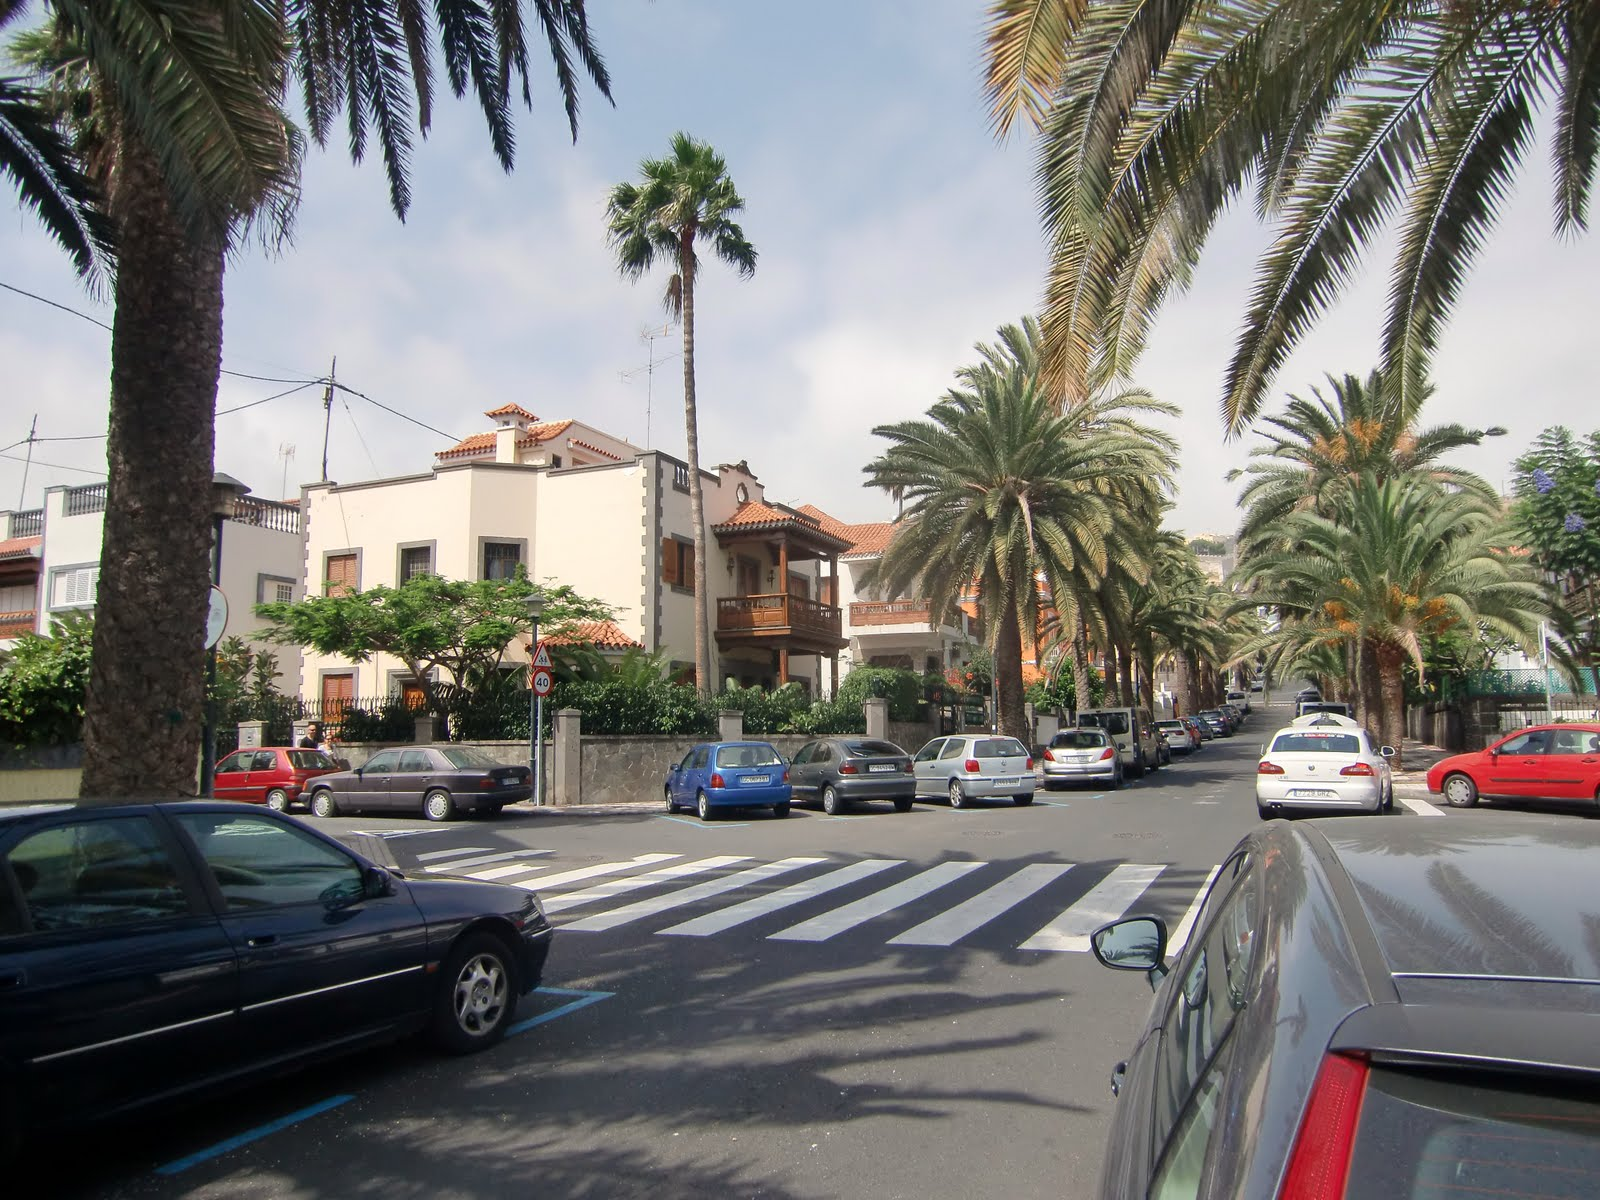 Canary islands photography arquitectura ciudad jardin for Barrio ciudad jardin